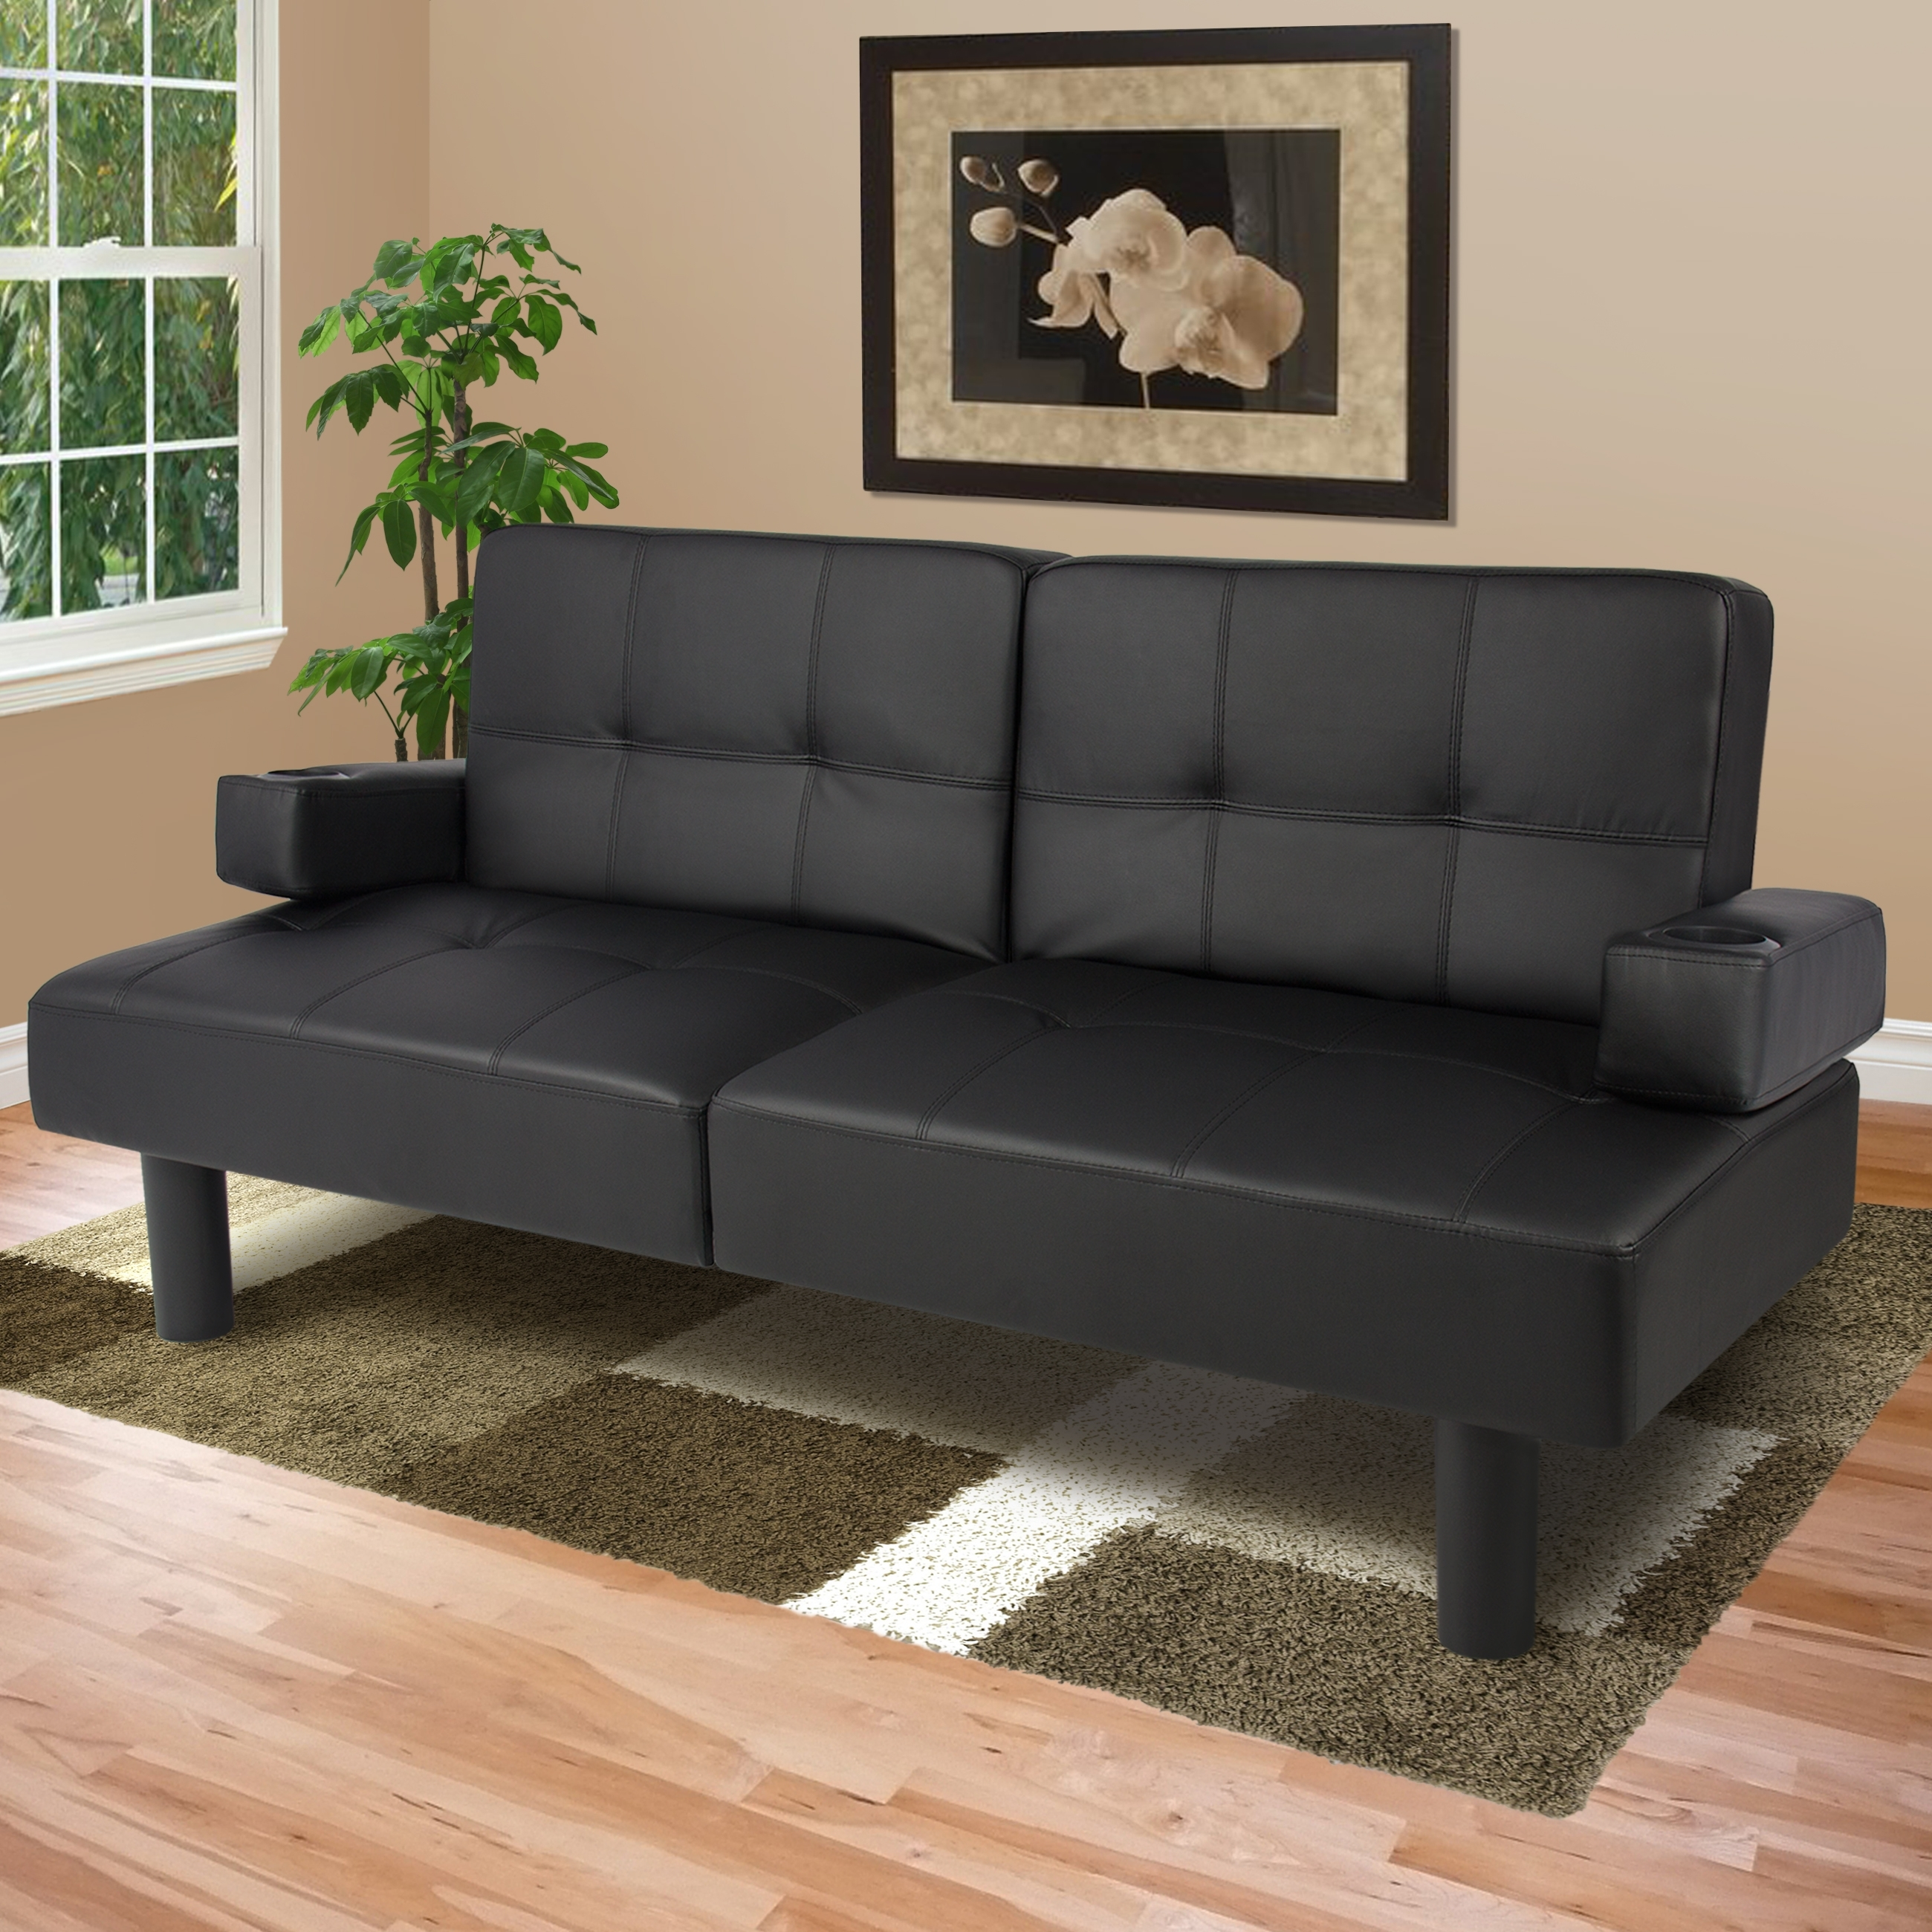 Latest Fold Up Sofa Chairs Intended For Best Choice Products Modern Faux Leather Fold Down Convertible (View 20 of 20)